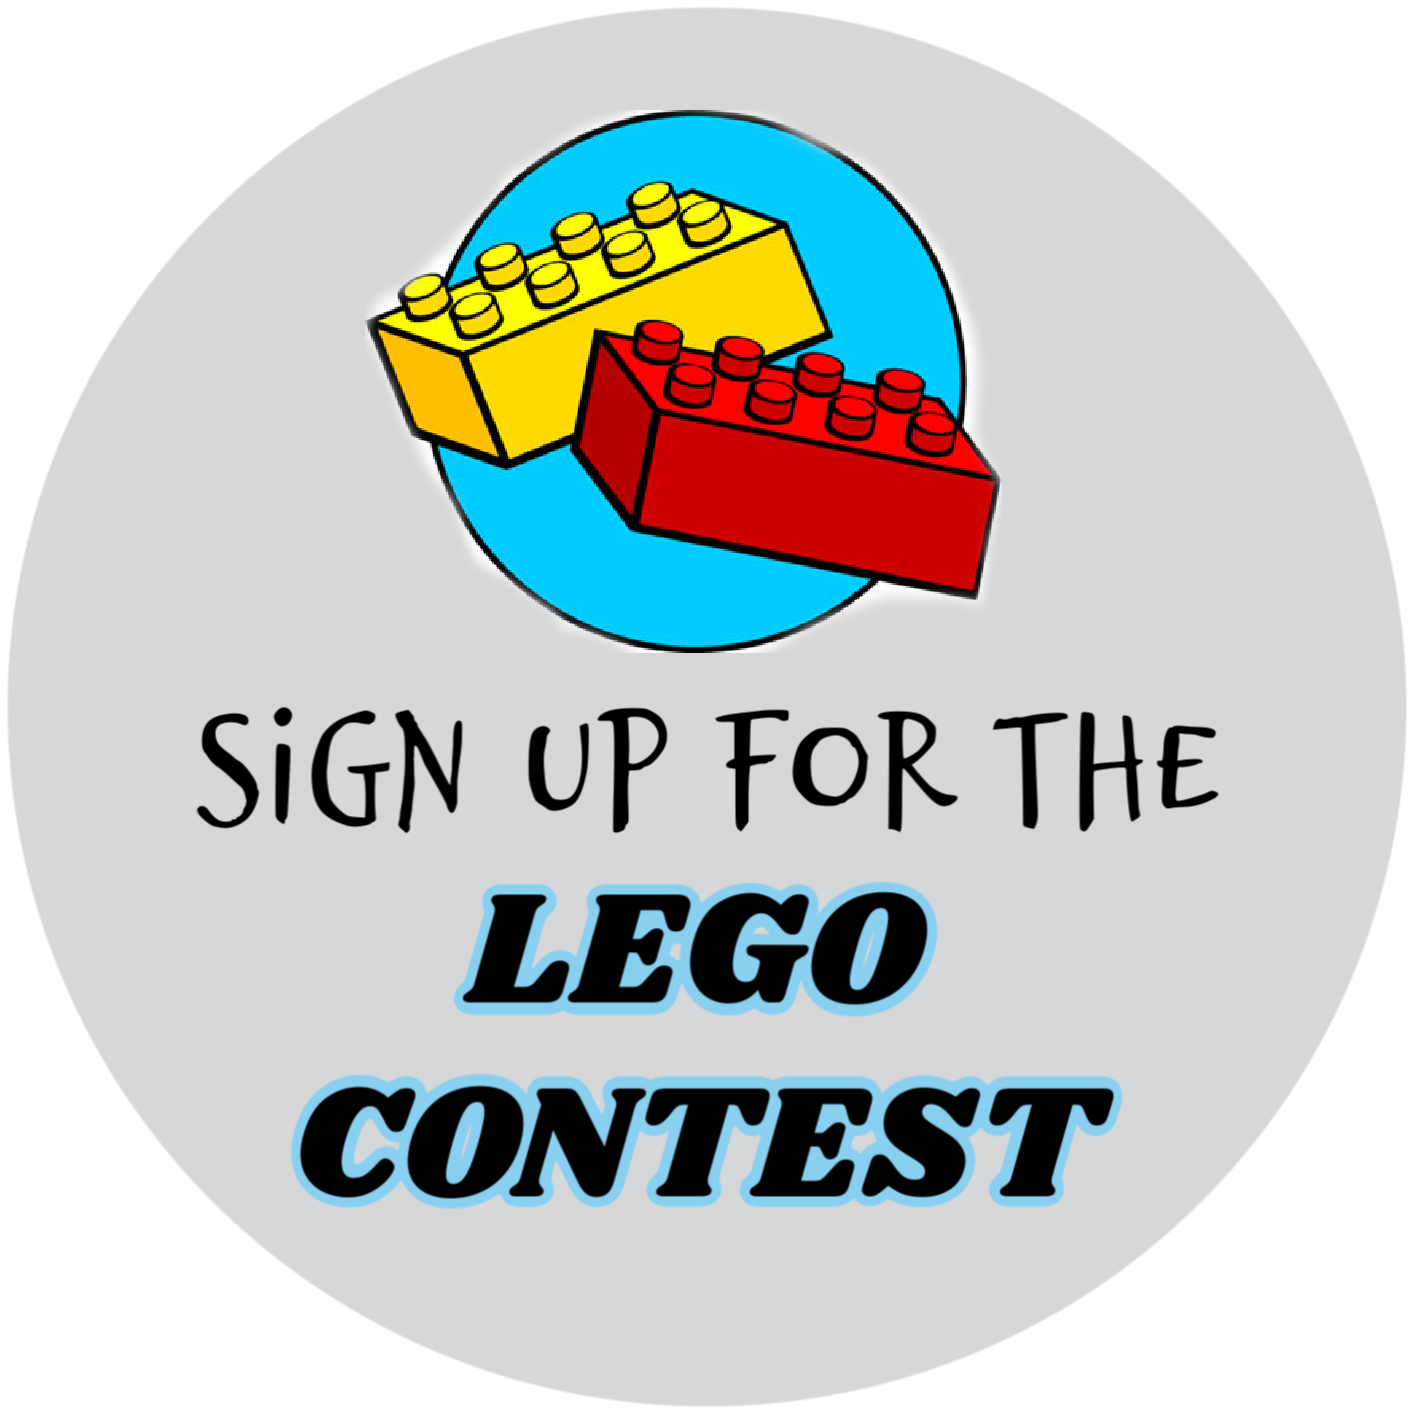 sign up for lego contest.png